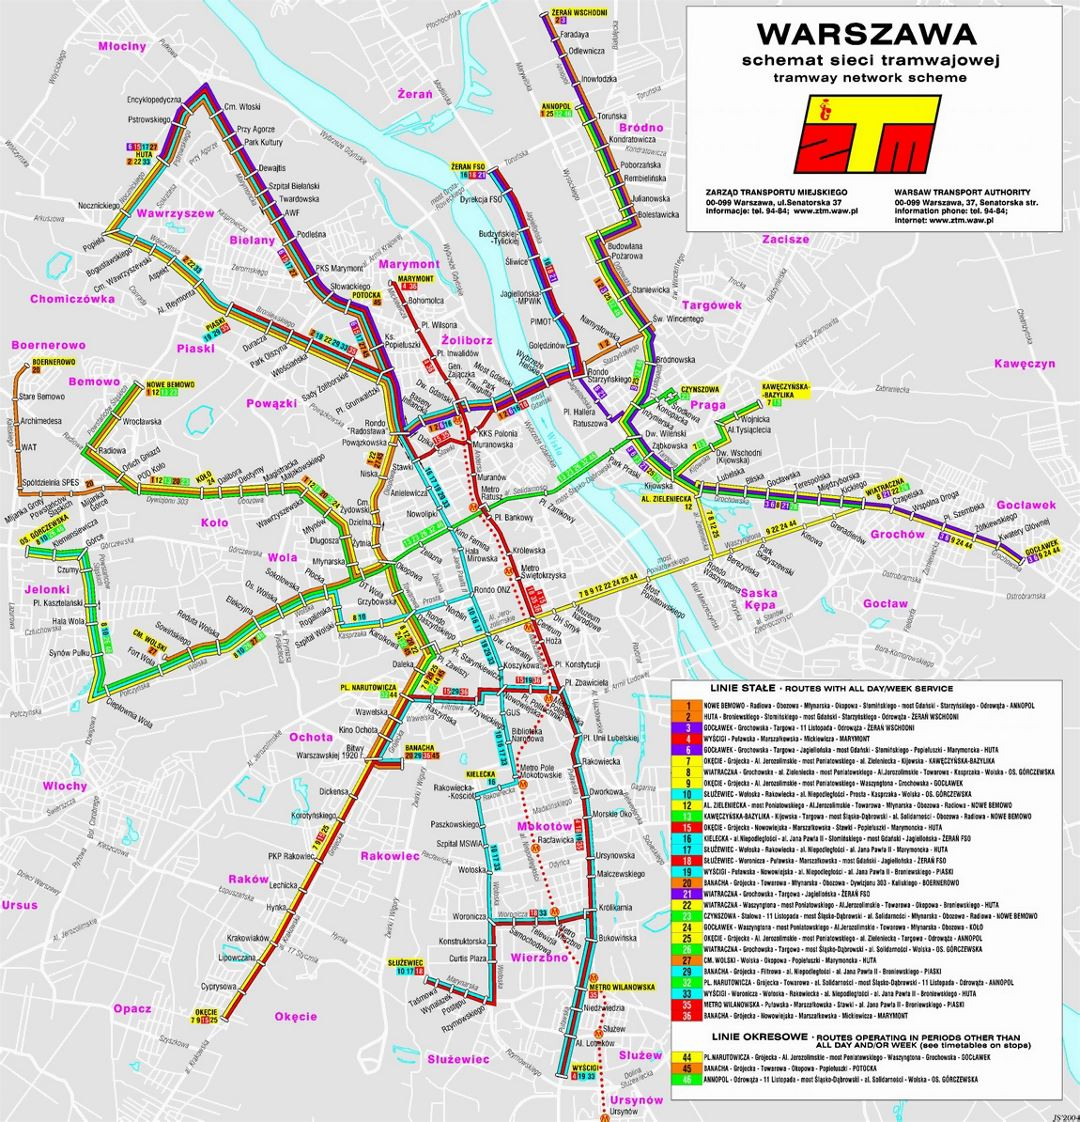 Detailed tram communication map of Warsaw city